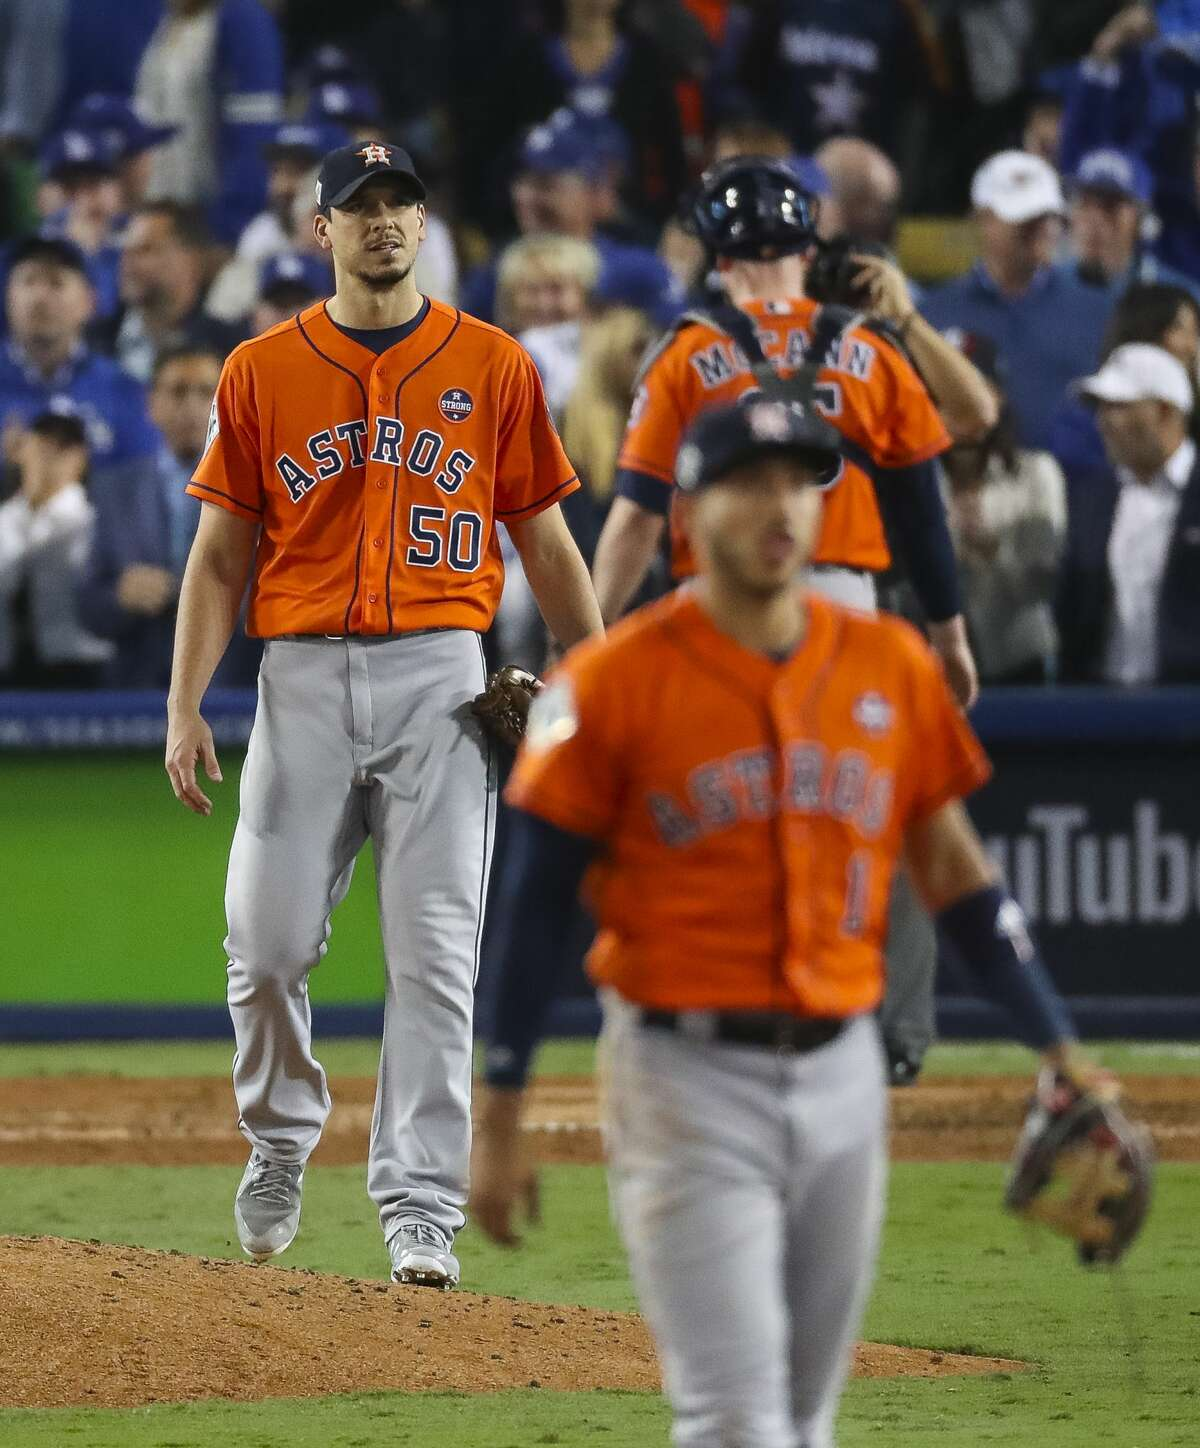 Houston Astros pitcher Charlie Morton (50) reacts after allowing an RBI single by Los Angeles Dodgers right fielder Andre Ethier (16) during the sixth inning of Game 7 of the World Series at Dodger Stadium on Wednesday, Nov. 1, 2017, in Los Angeles.